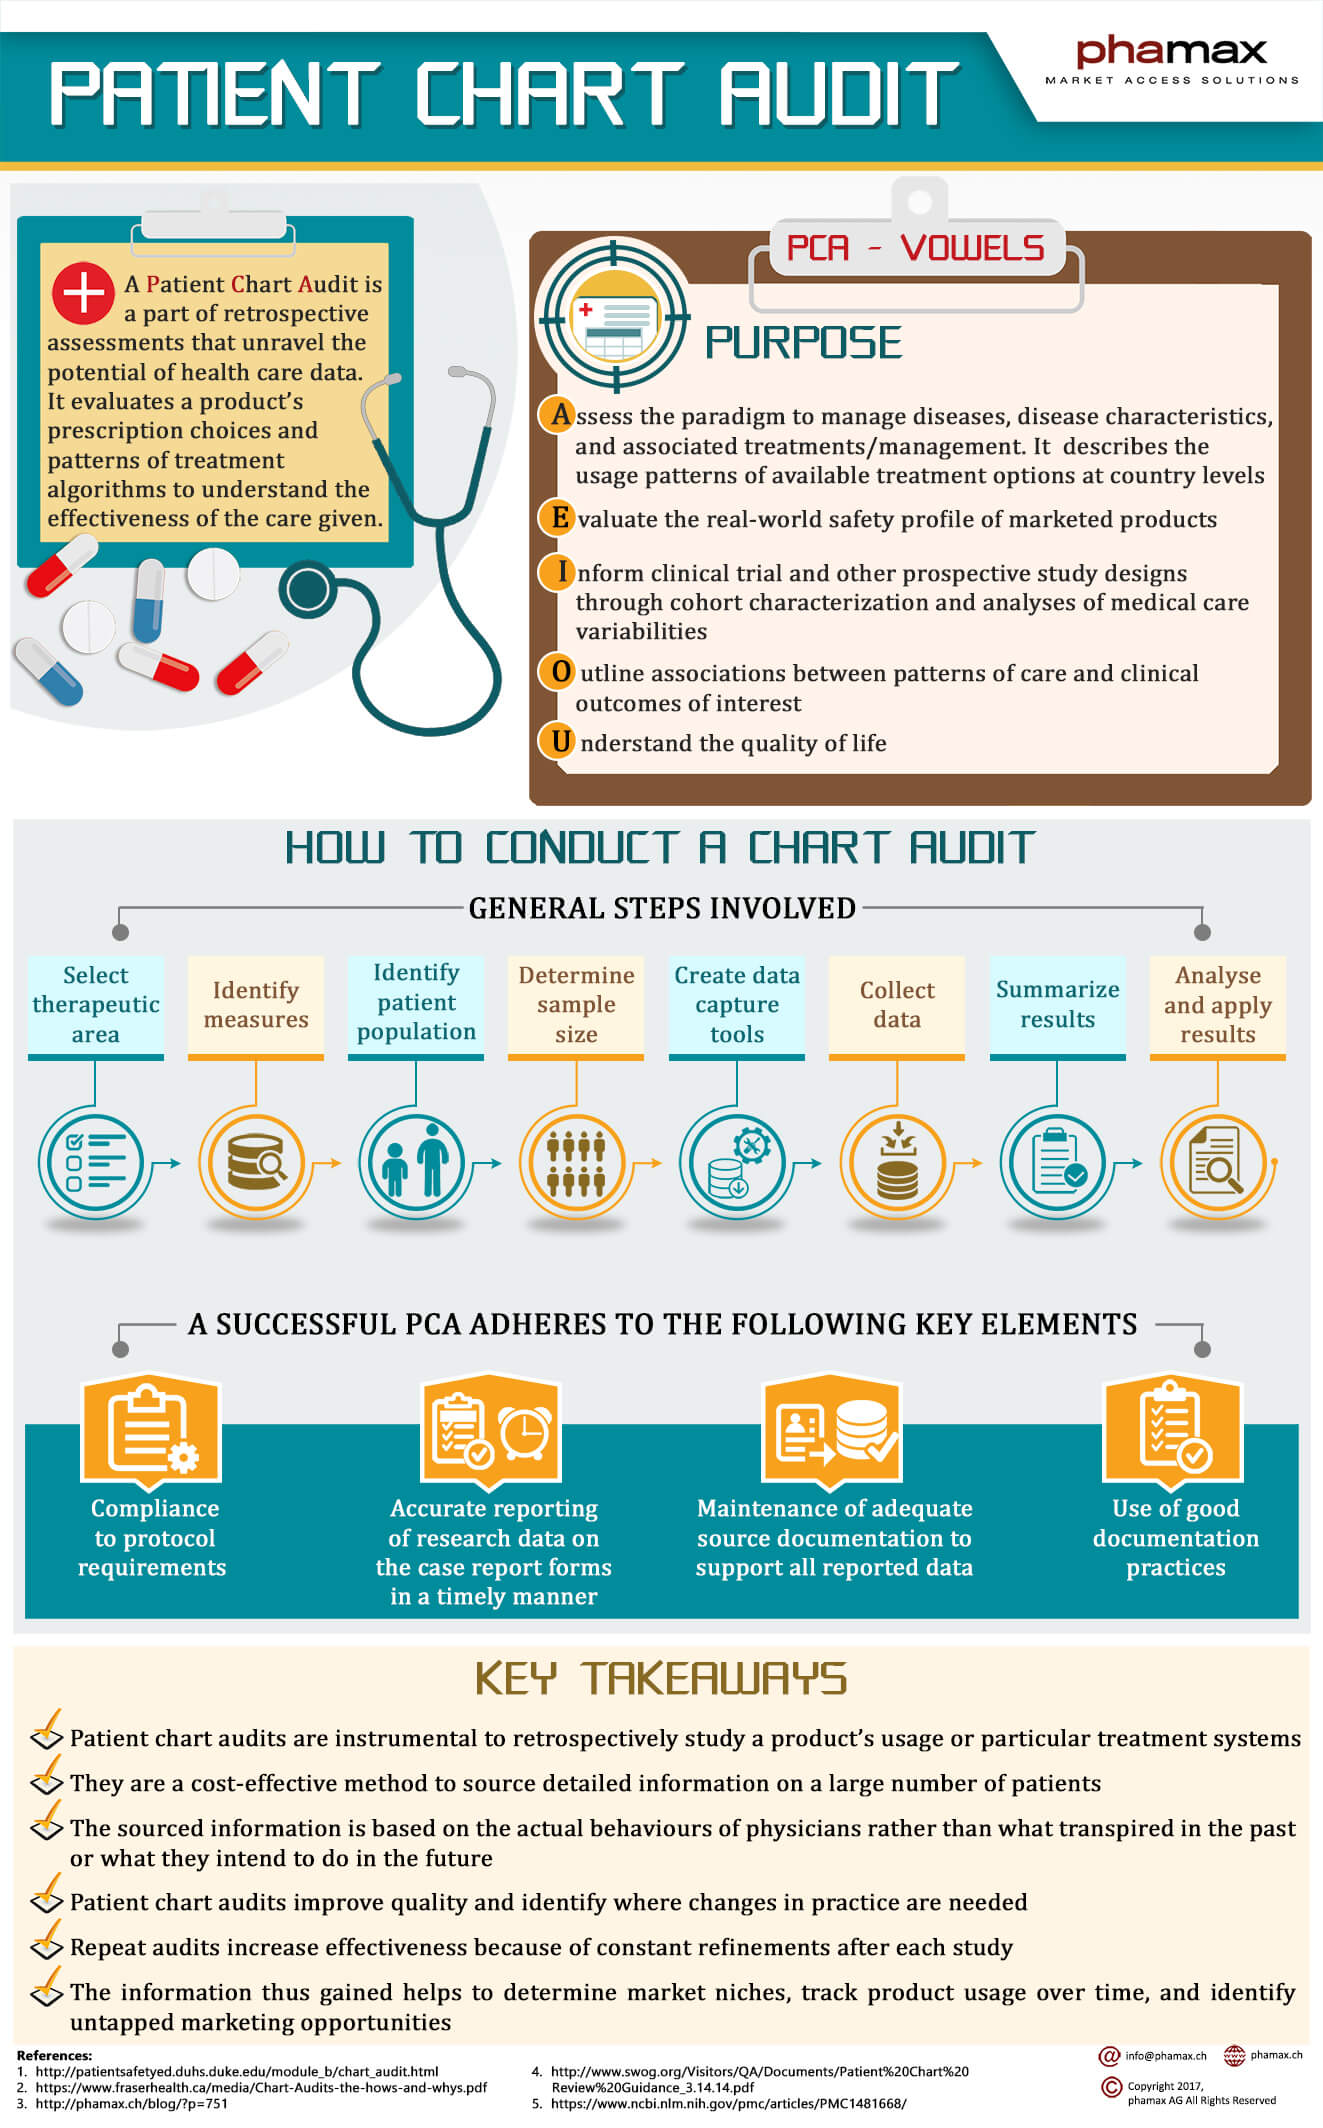 Infographic of a Patient Chart Audit